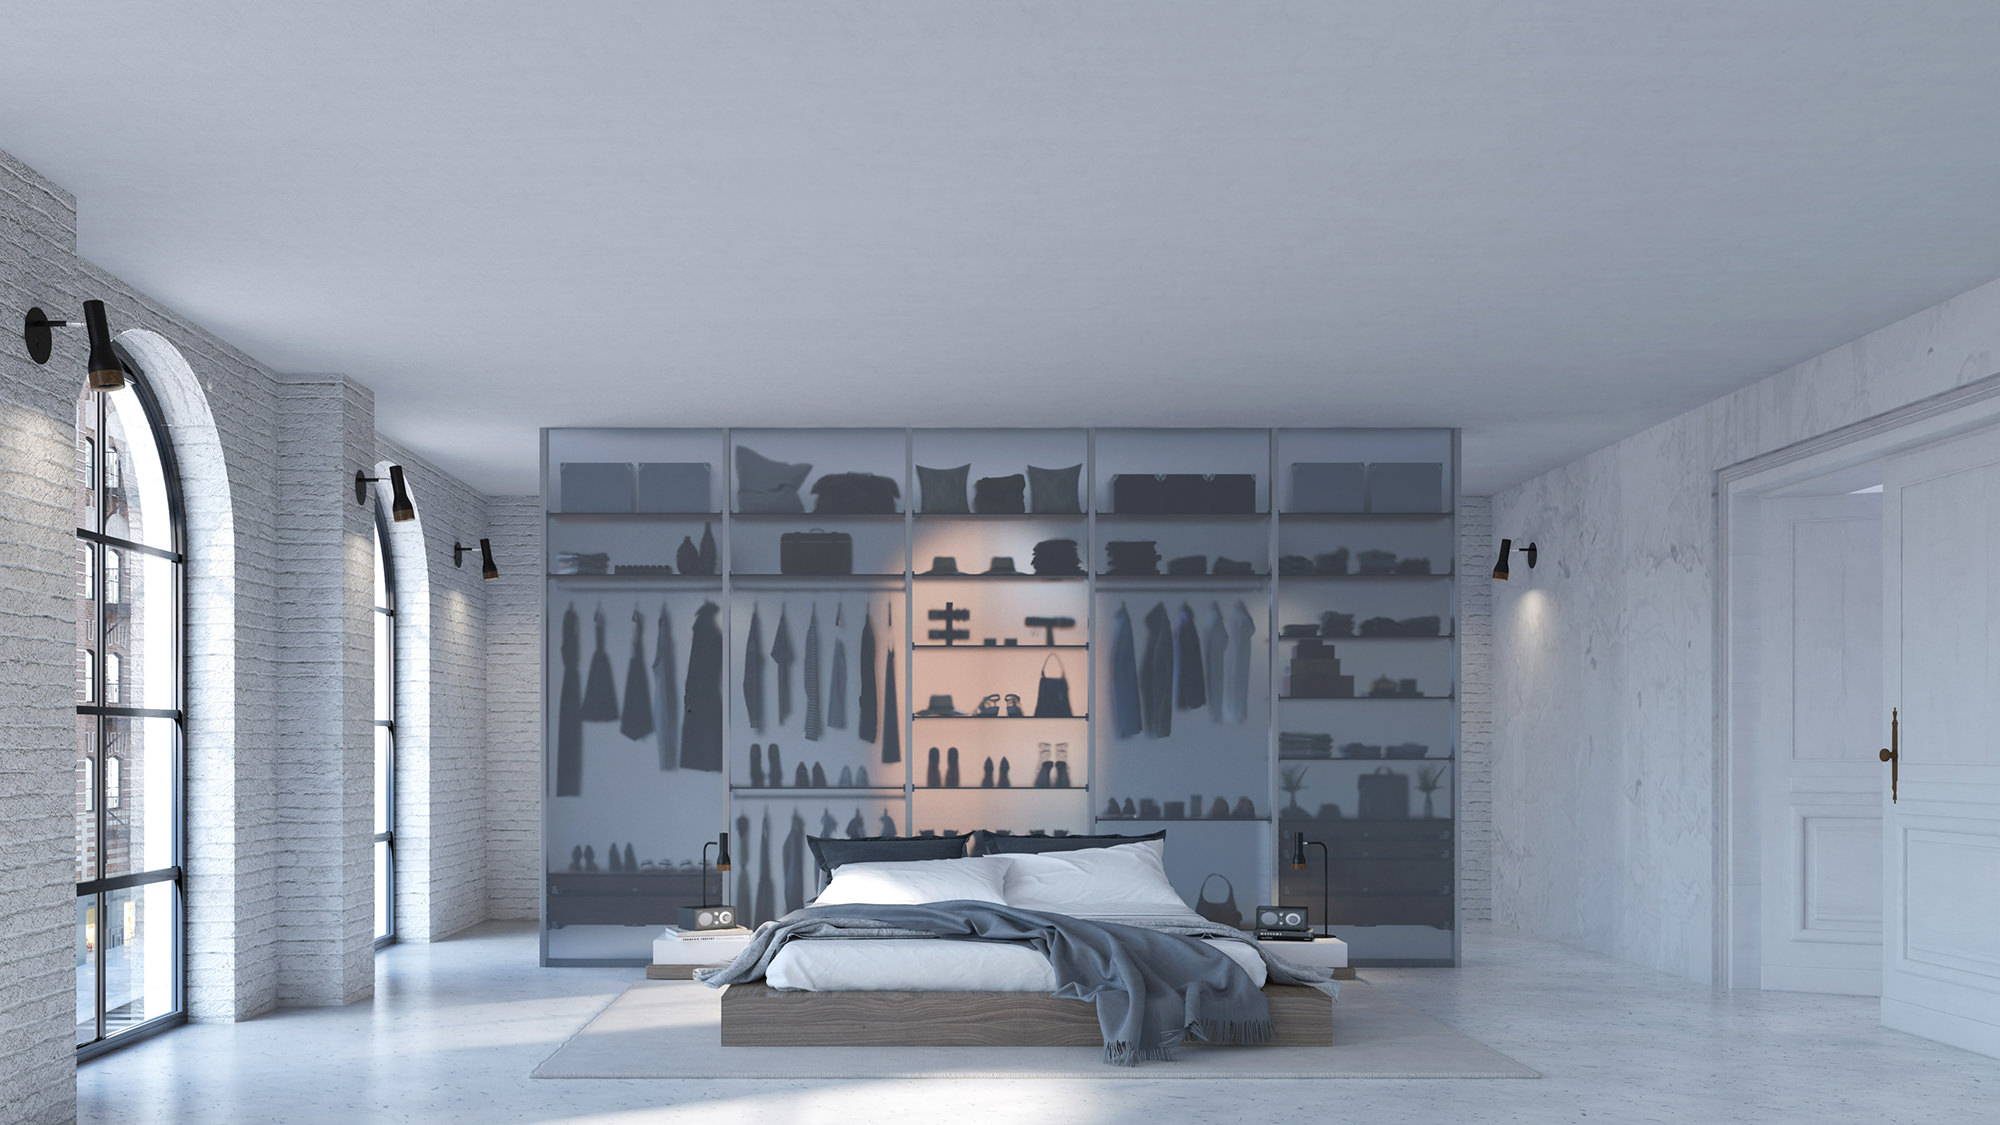 walk-in closet as a bedroom seperation